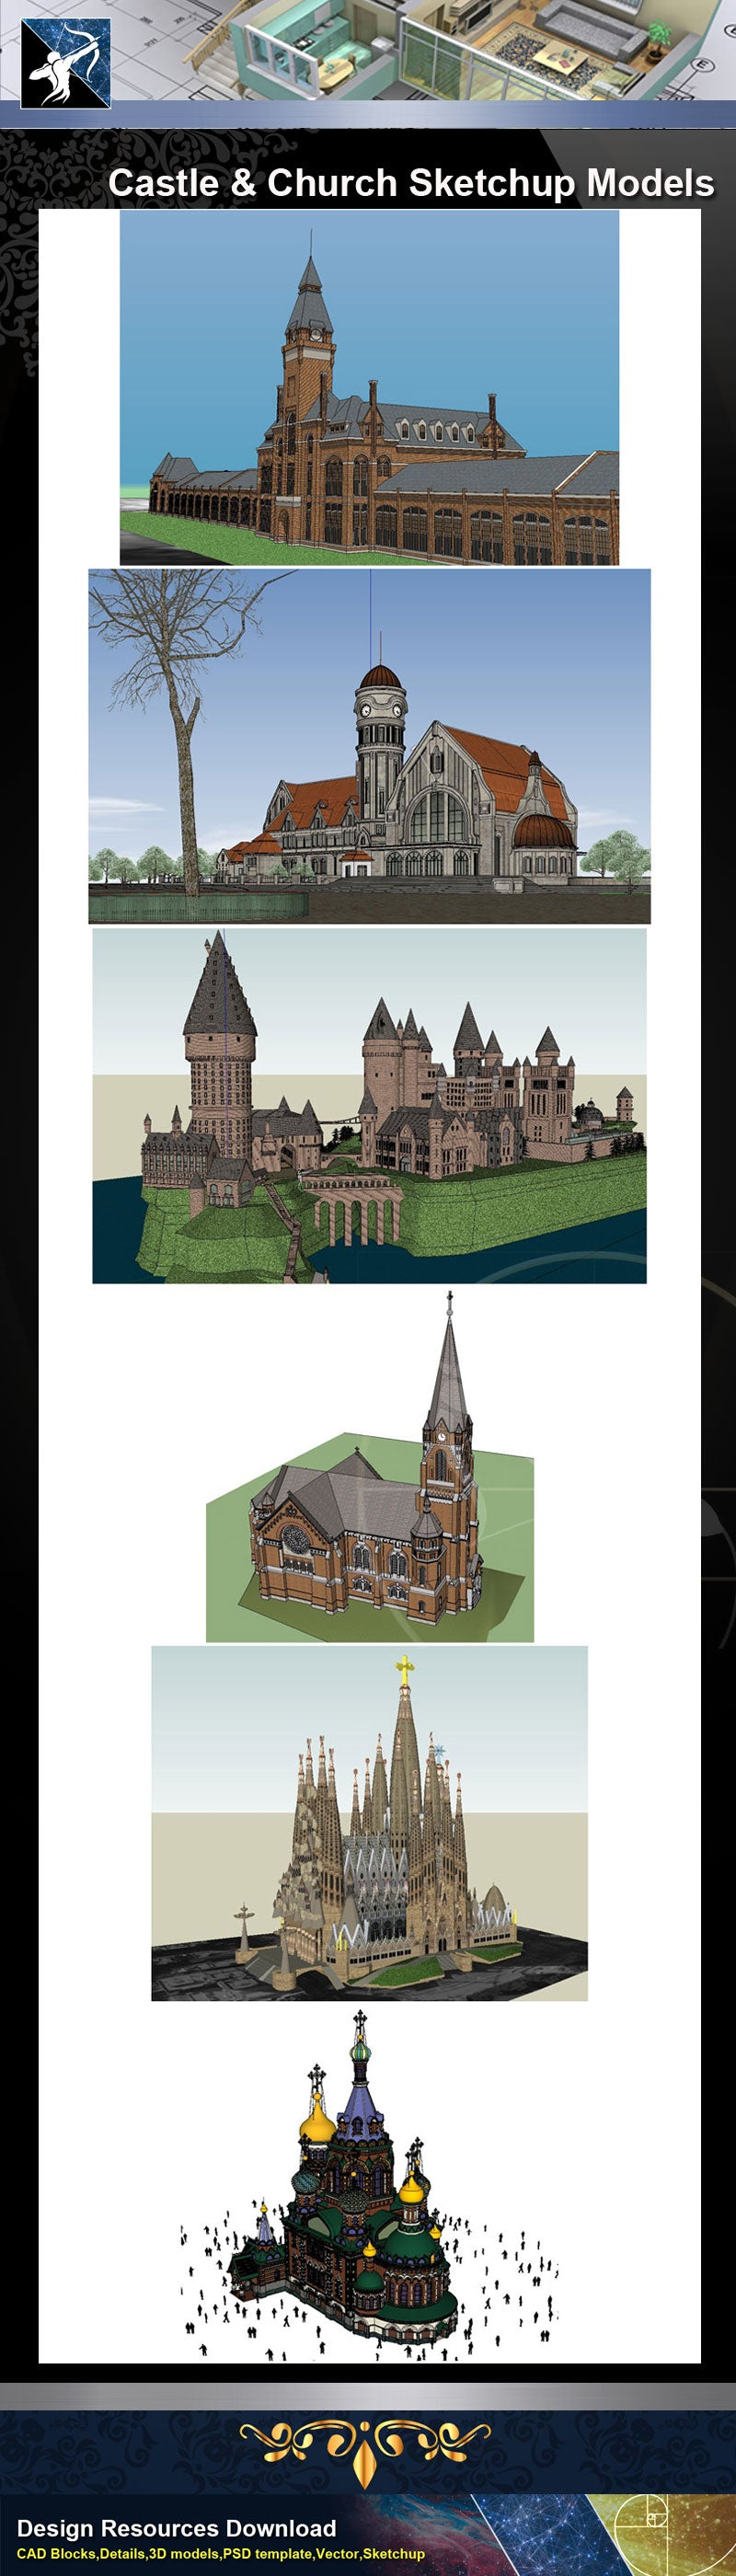 ★Sketchup 3D Models-Castle and Church Sketchup Models